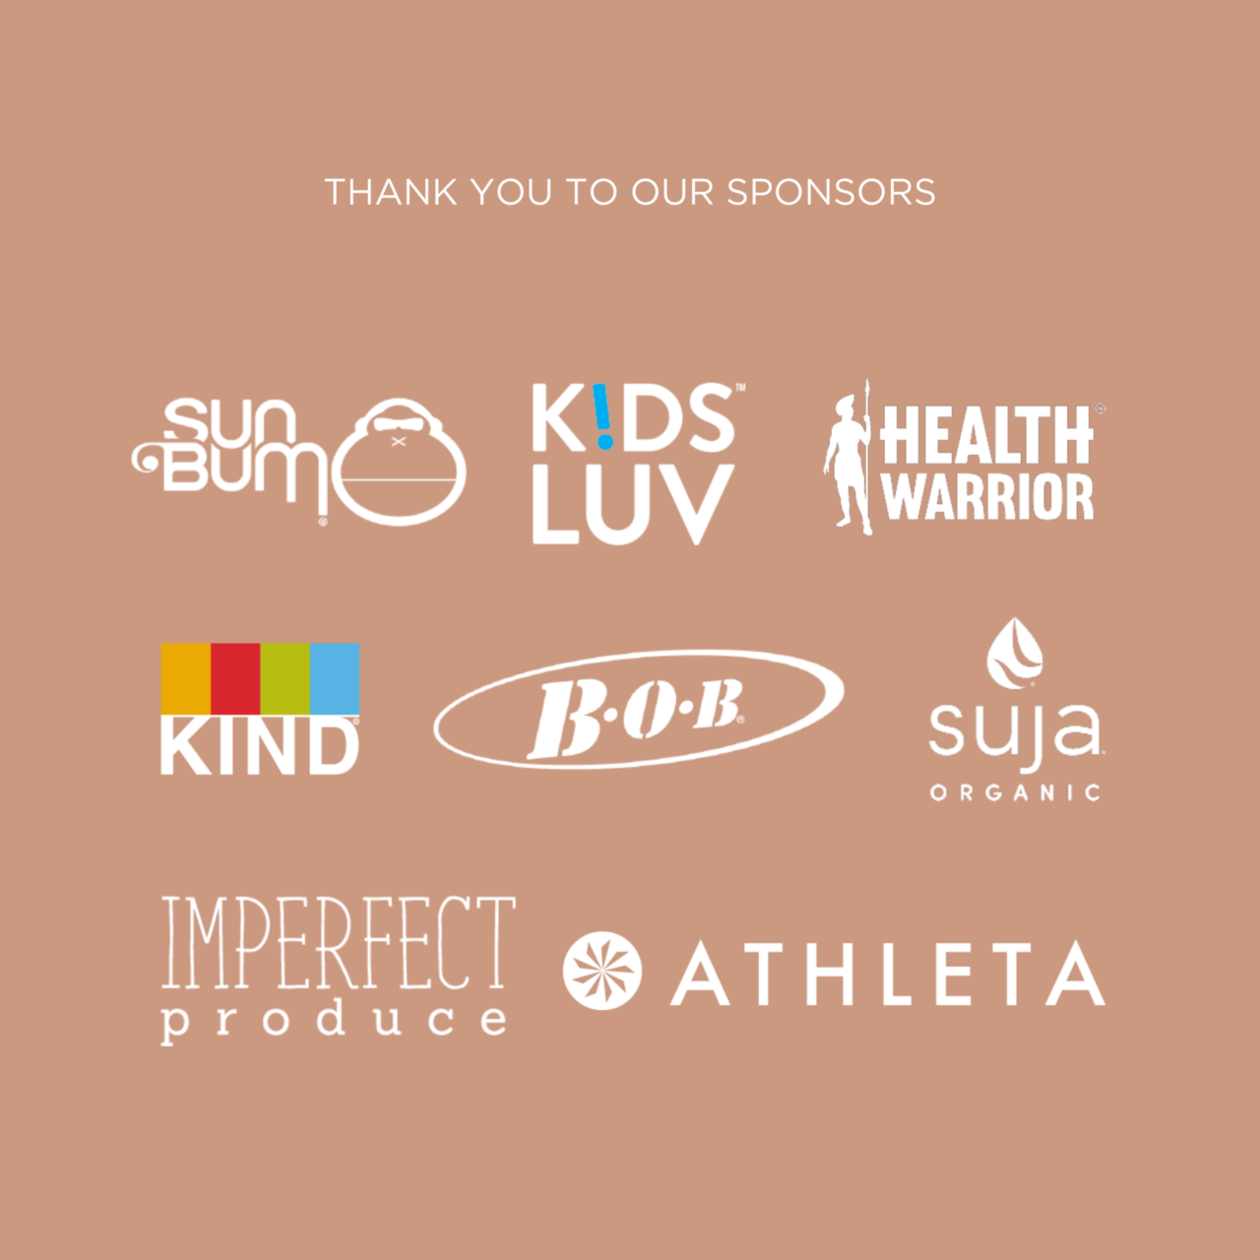 thank you to our back-to-school campaign sponsors - sun bum, kidsluv, health warrior, kind snacks, BOB, suja, imperfect produce, athleta